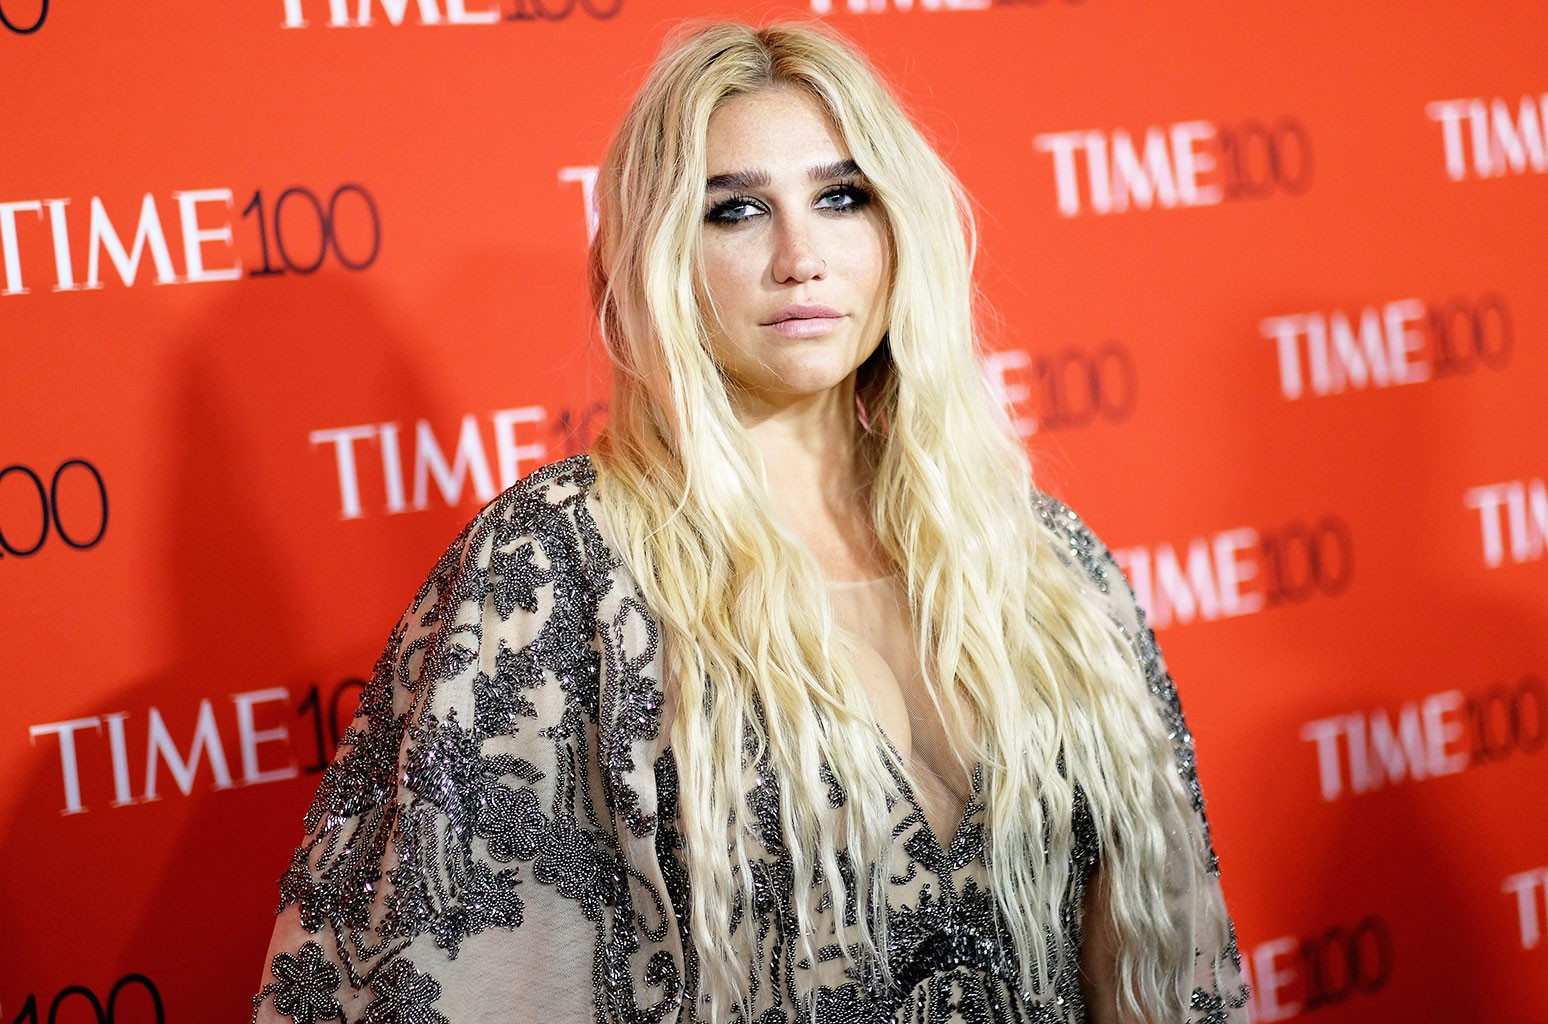 Kesha Shows Off Her Freckles In Makeup